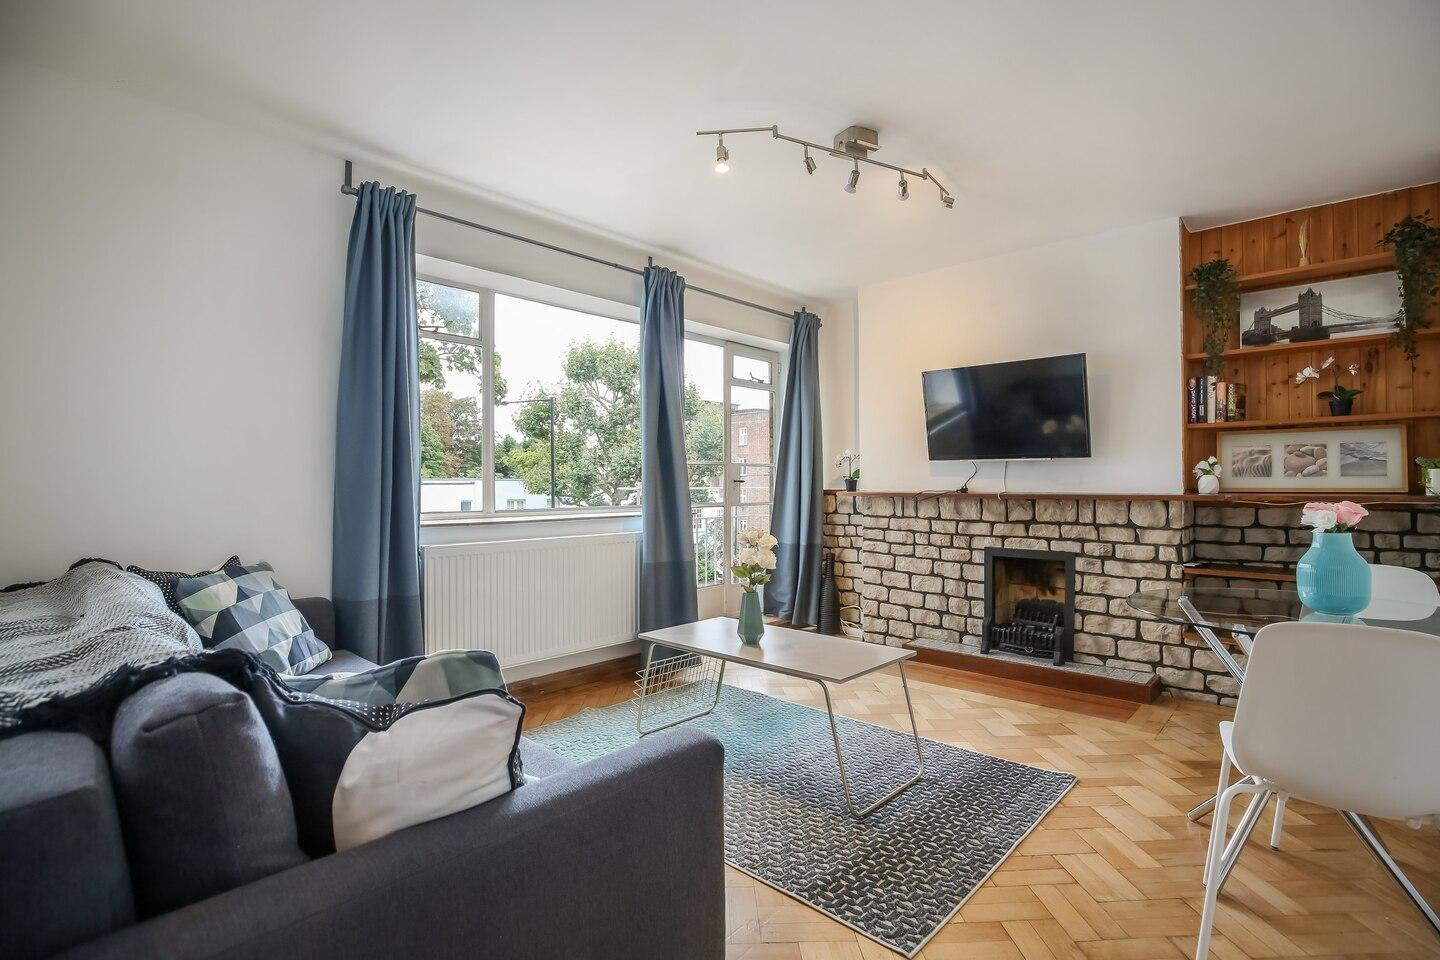 Suites by Rehoboth ★ Prime XVII ★ Maida Vale